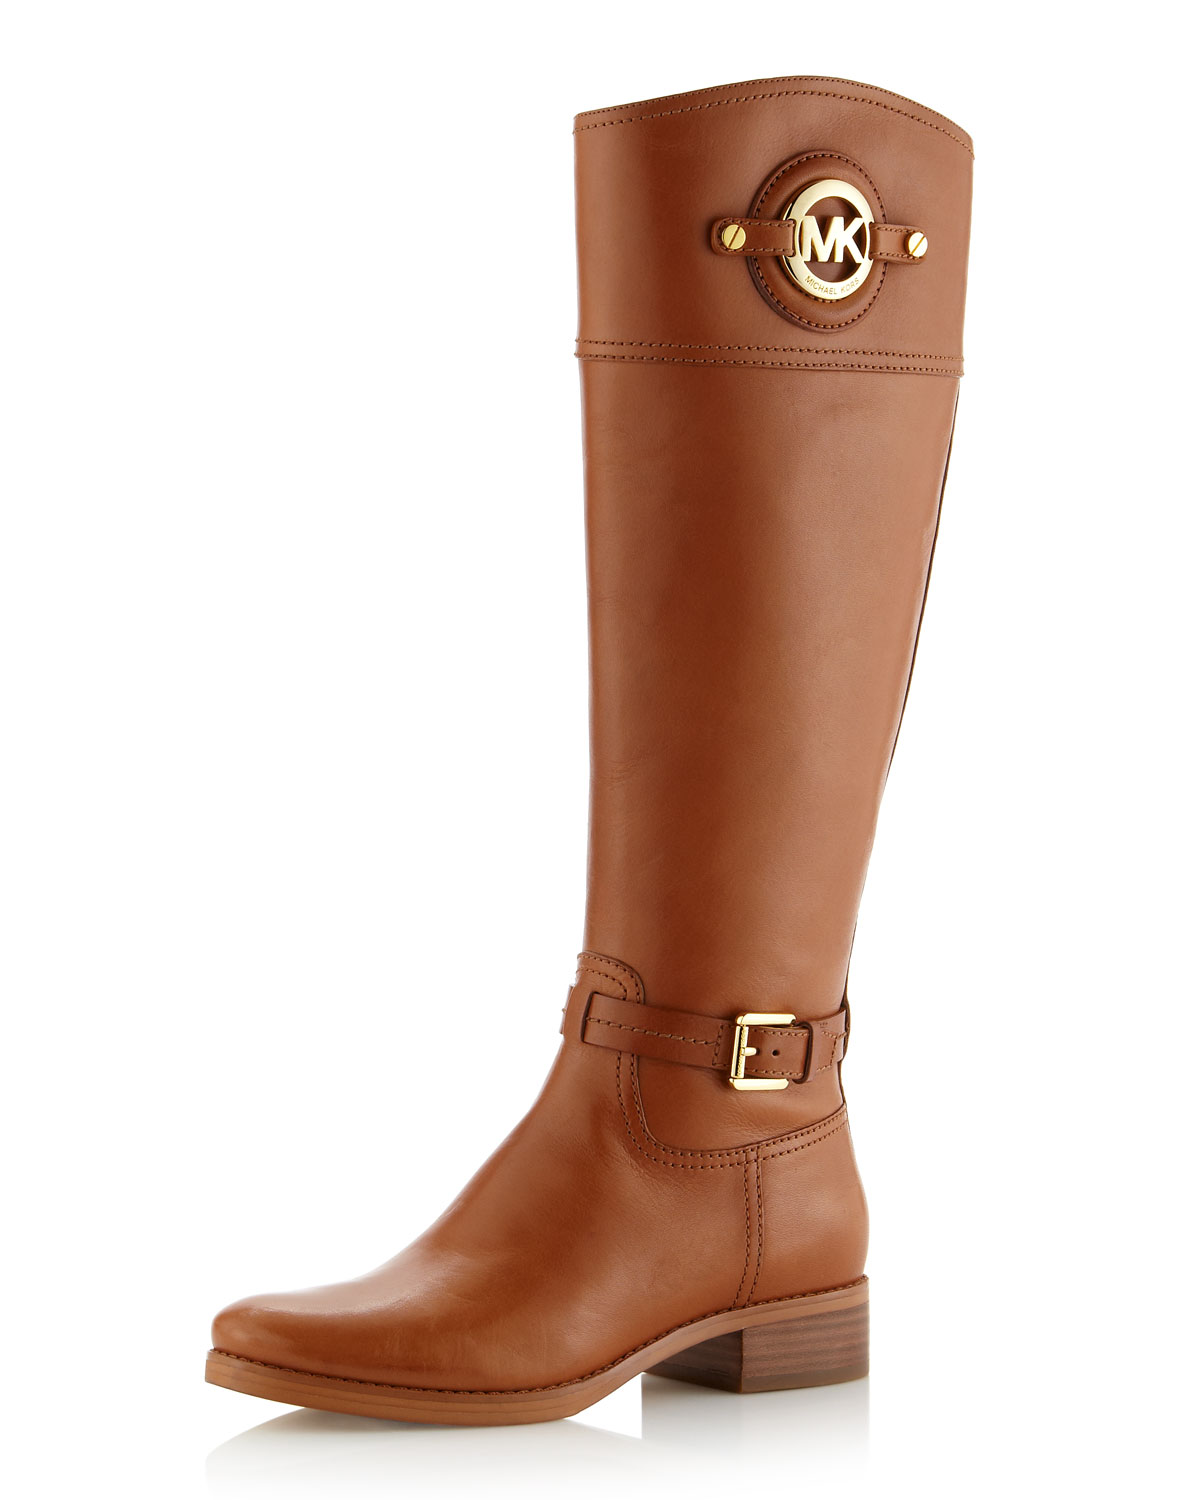 Michael michael kors Stockard Leather Riding Boot in Brown | Lyst